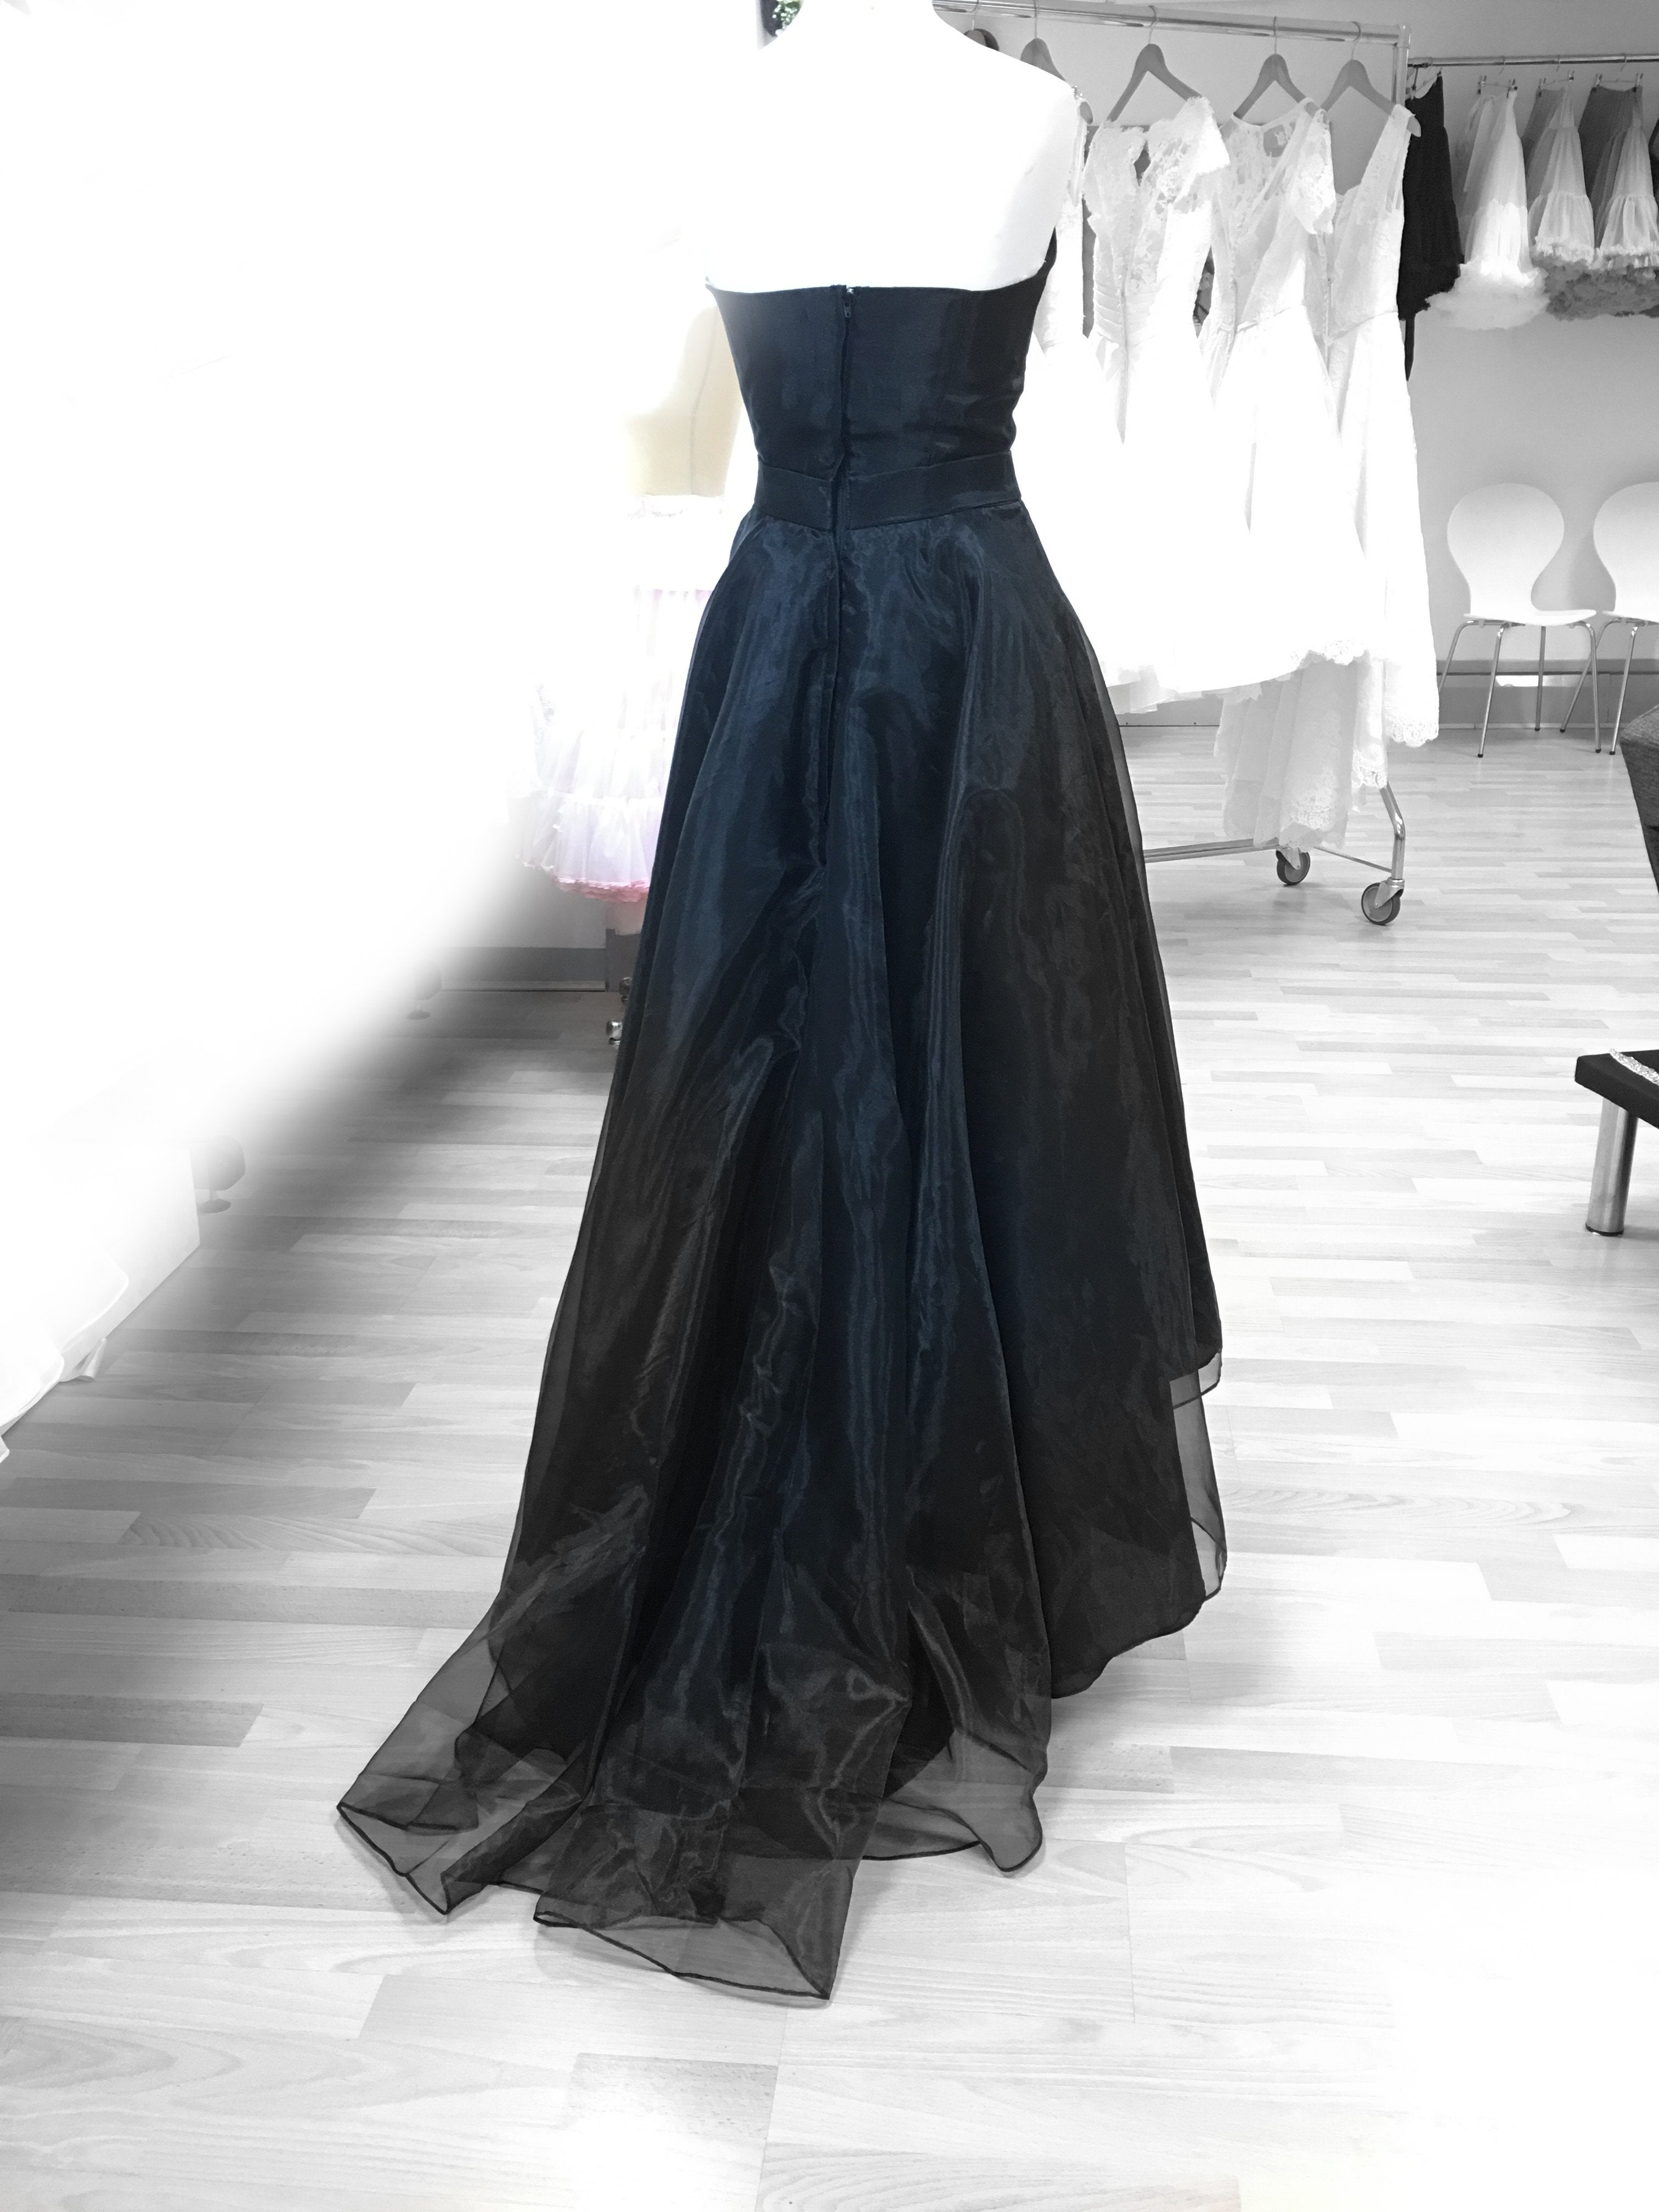 Image shows rear train of Long black organza strapless gown